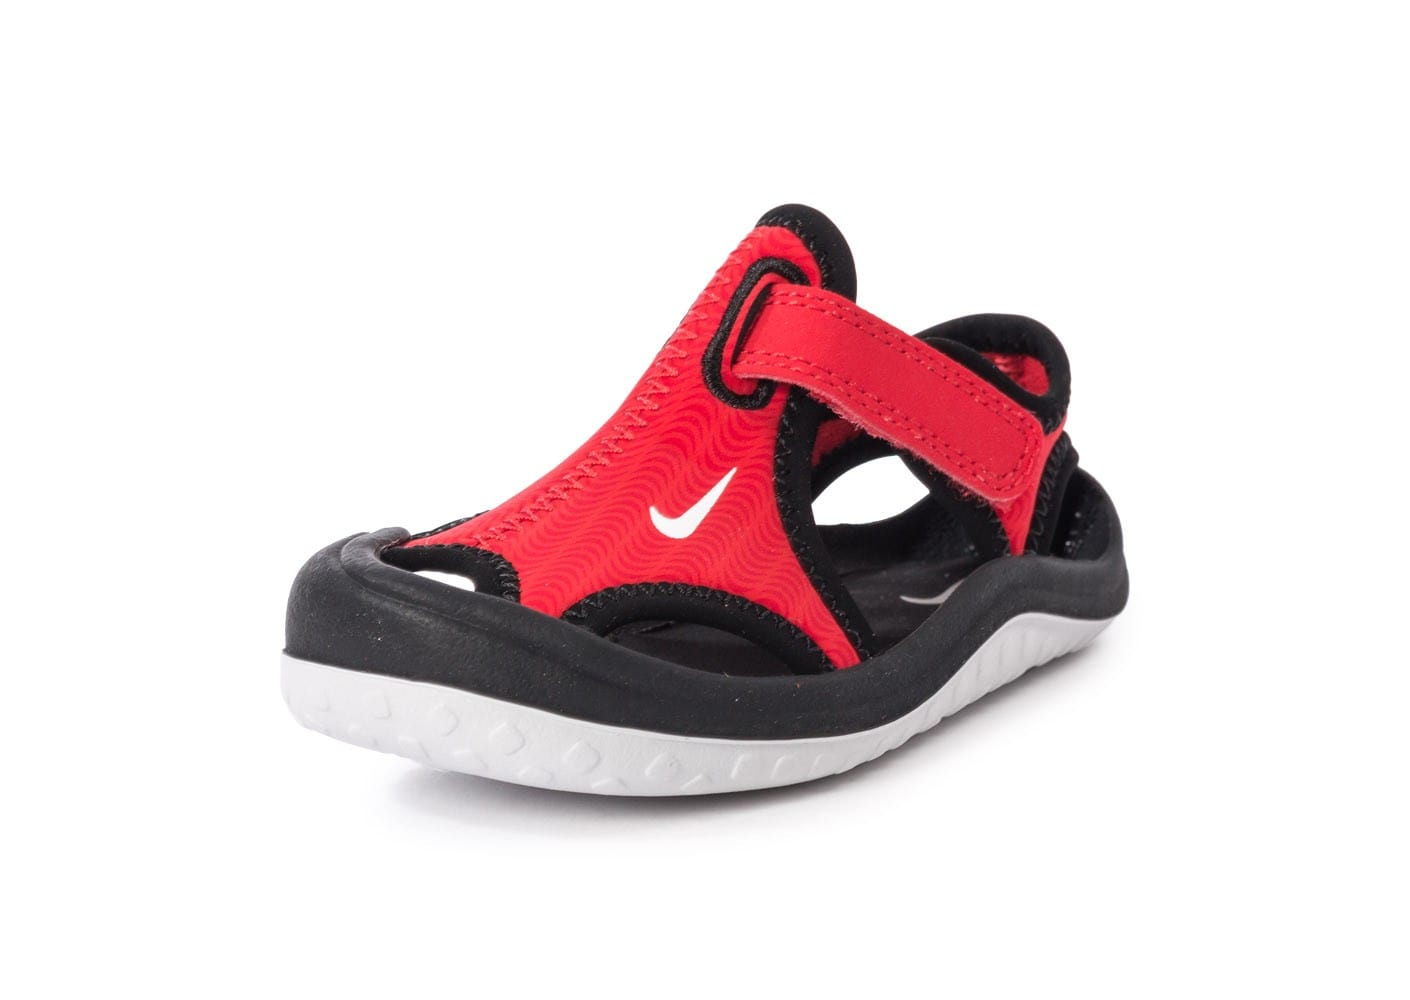 online store c187d 55211 ... chaussures nike sunray protect bebe rouge vue avant